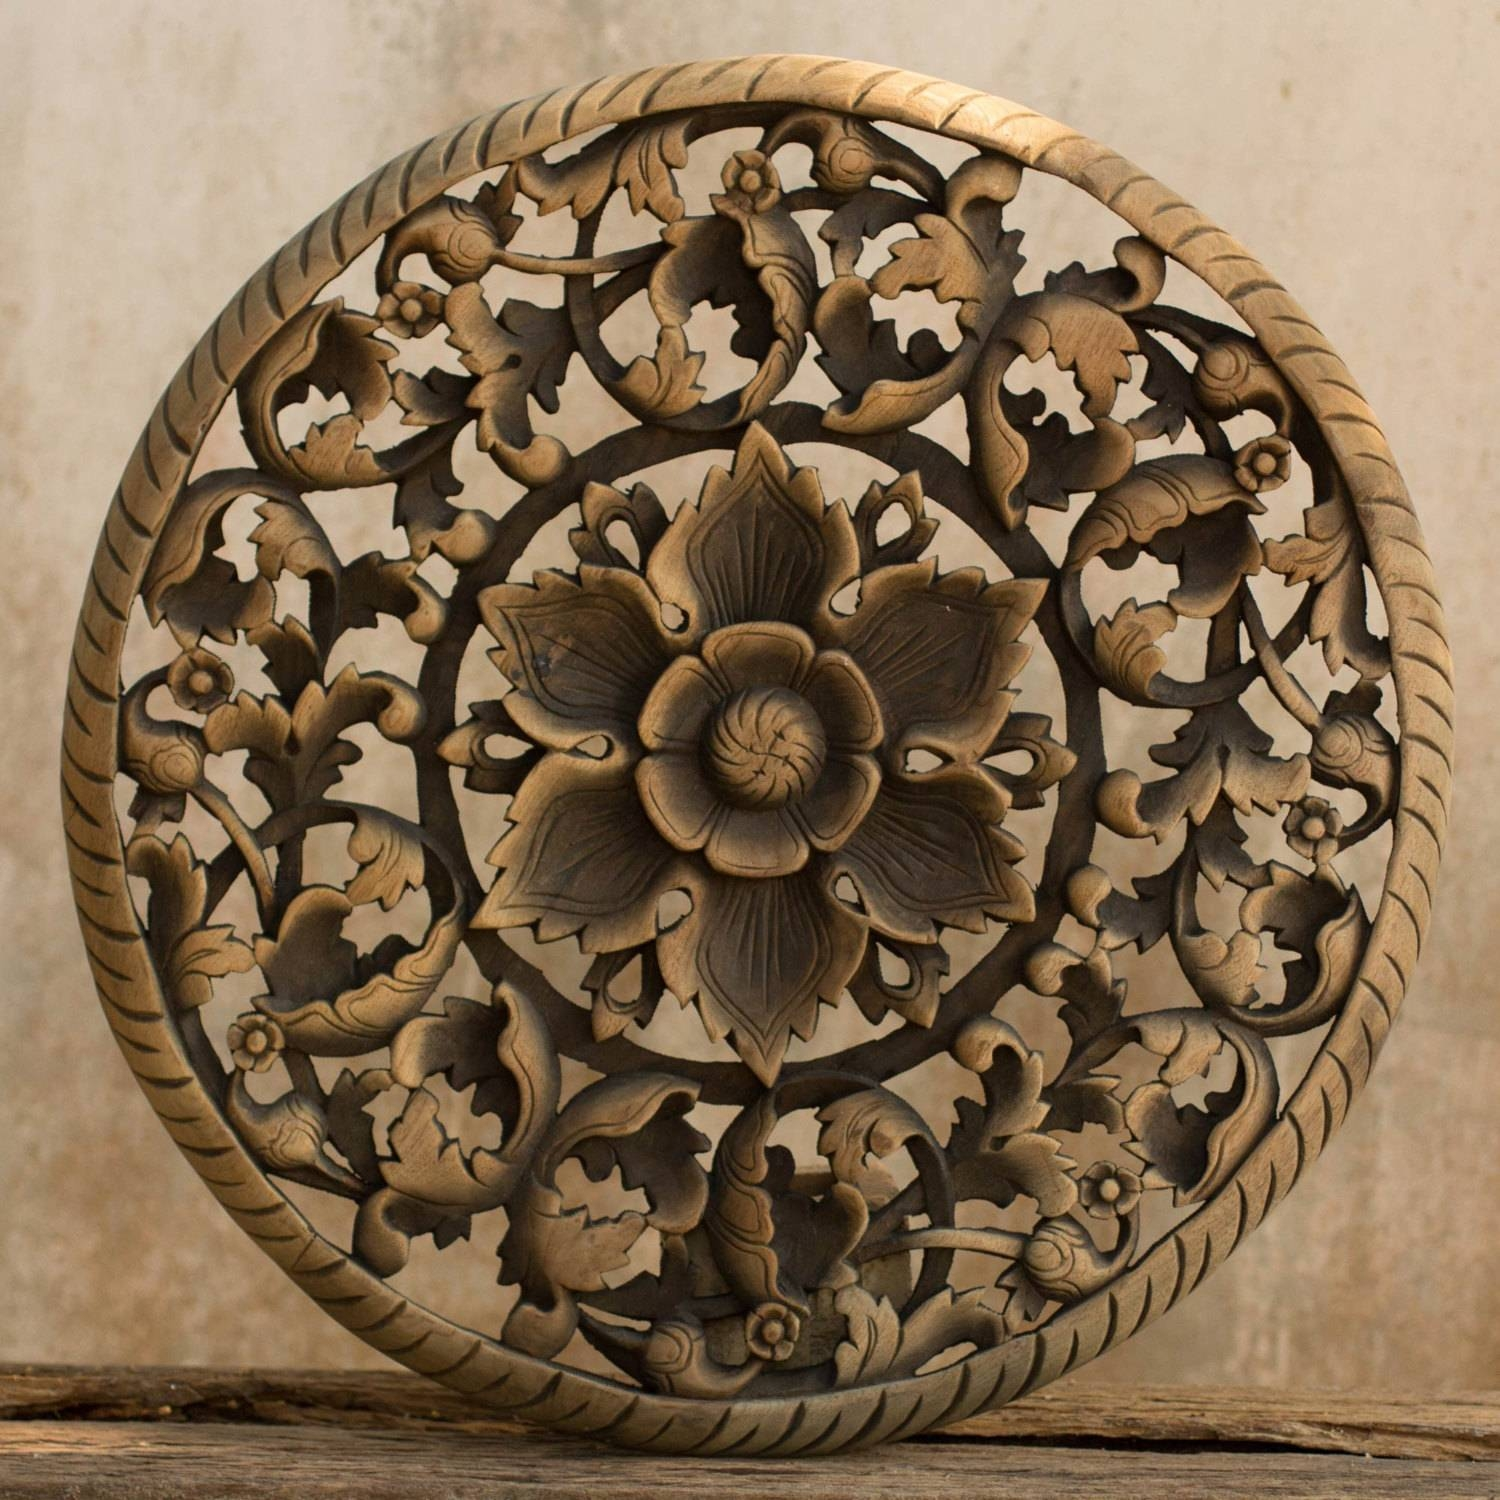 Tree Dimensional Floral Wooden Wall Hanging – Siam Sawadee Pertaining To Current Wood Carved Wall Art Panels (View 2 of 25)